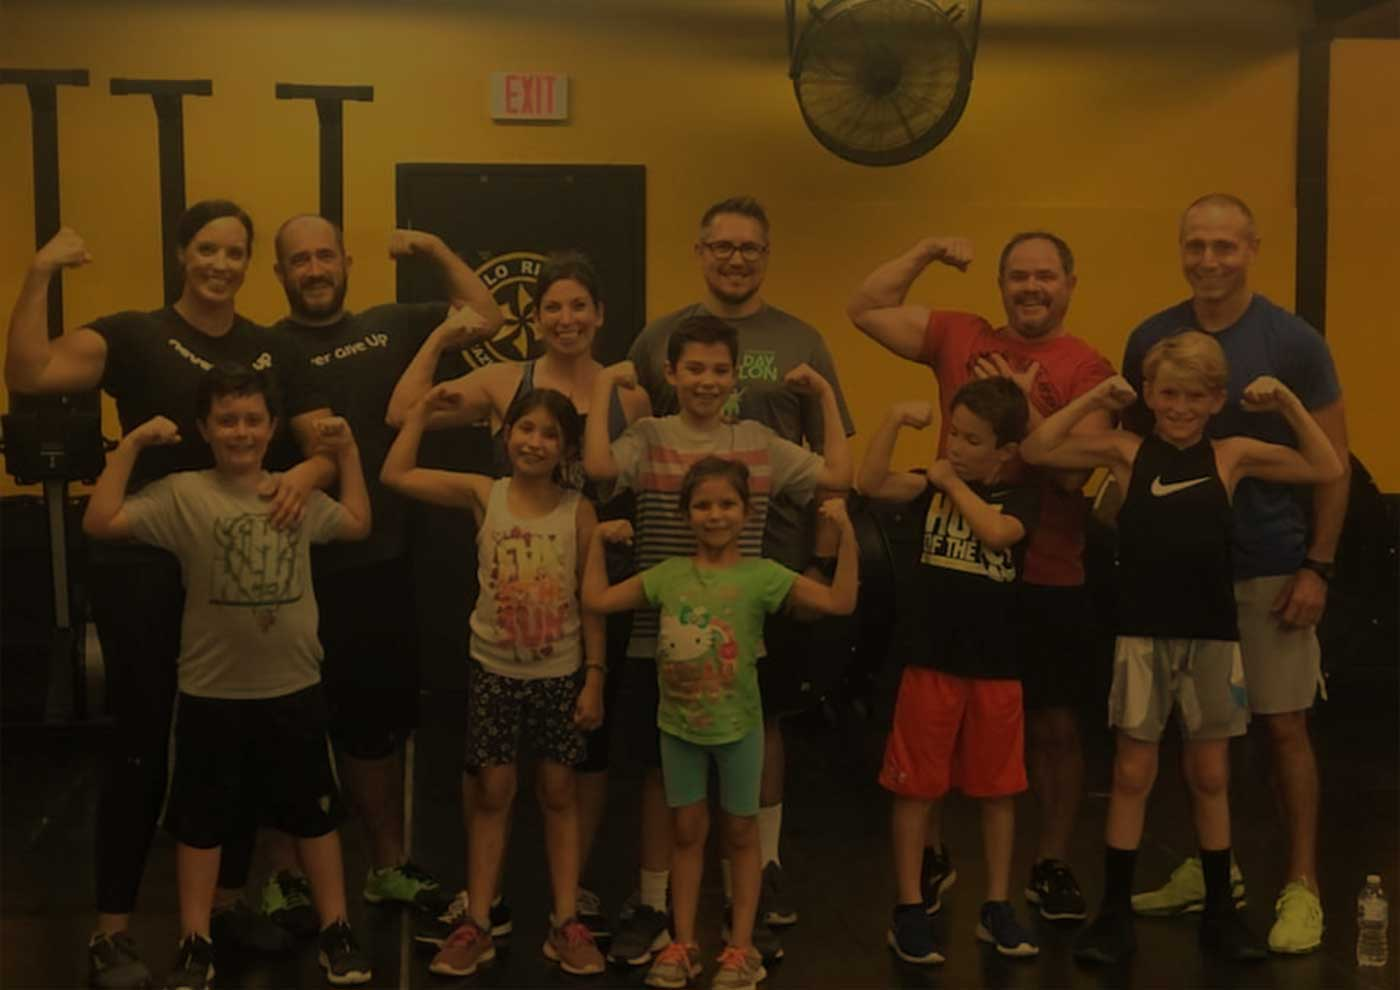 CrossFit Kids Classes - Tues/ThUrs- 4:30pm. Kids 5-12. Non-MembeR-Parents can sign up their kids. parentS May ATTEND Crossfit classES 2/week for $30/Week with their kids. Sign Up Here >